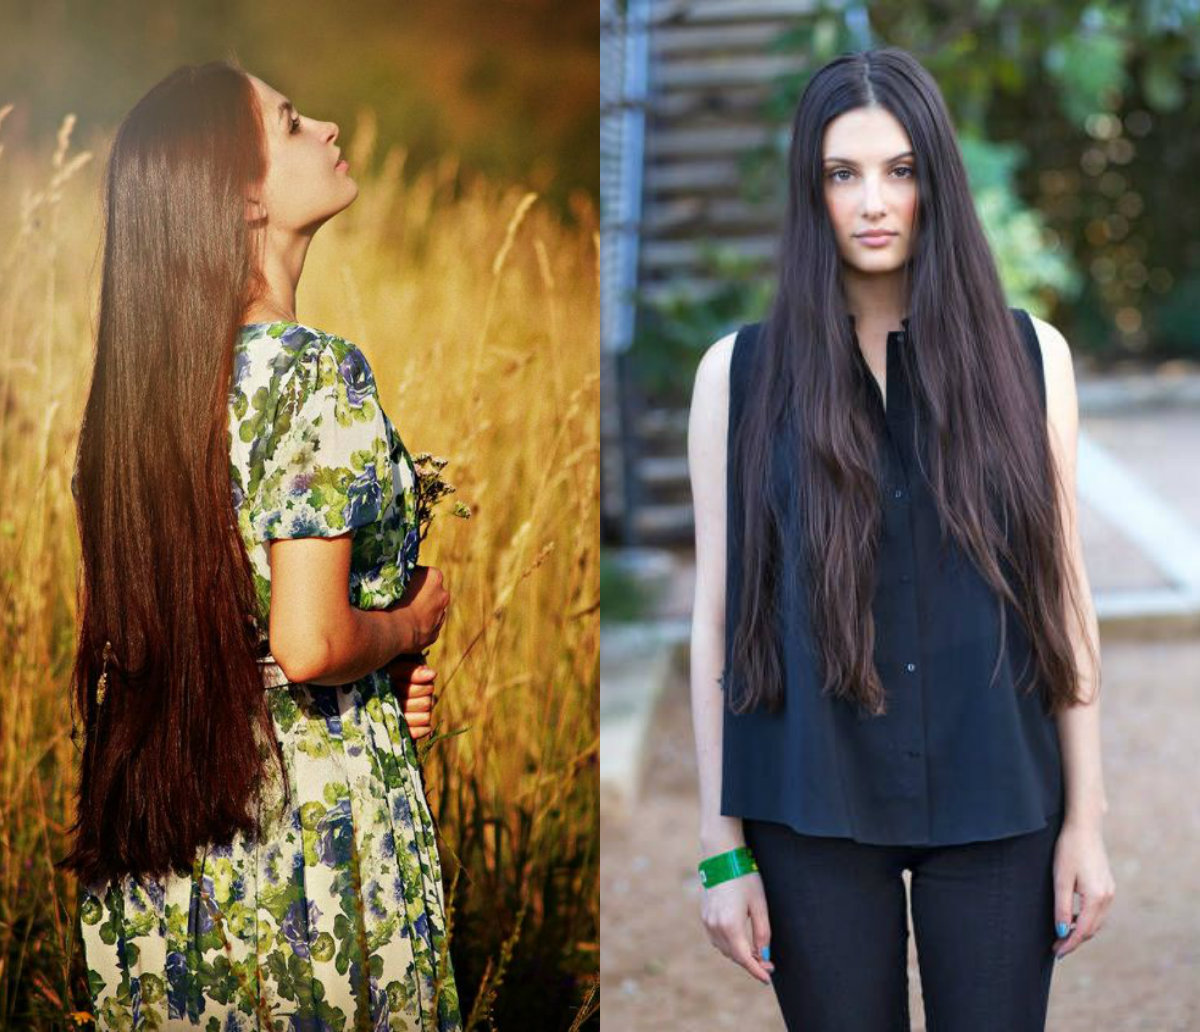 Fantastic Long Straight Hairstyles To Fall In Love With | Hairstyles, Haircuts and Hair Colors ...